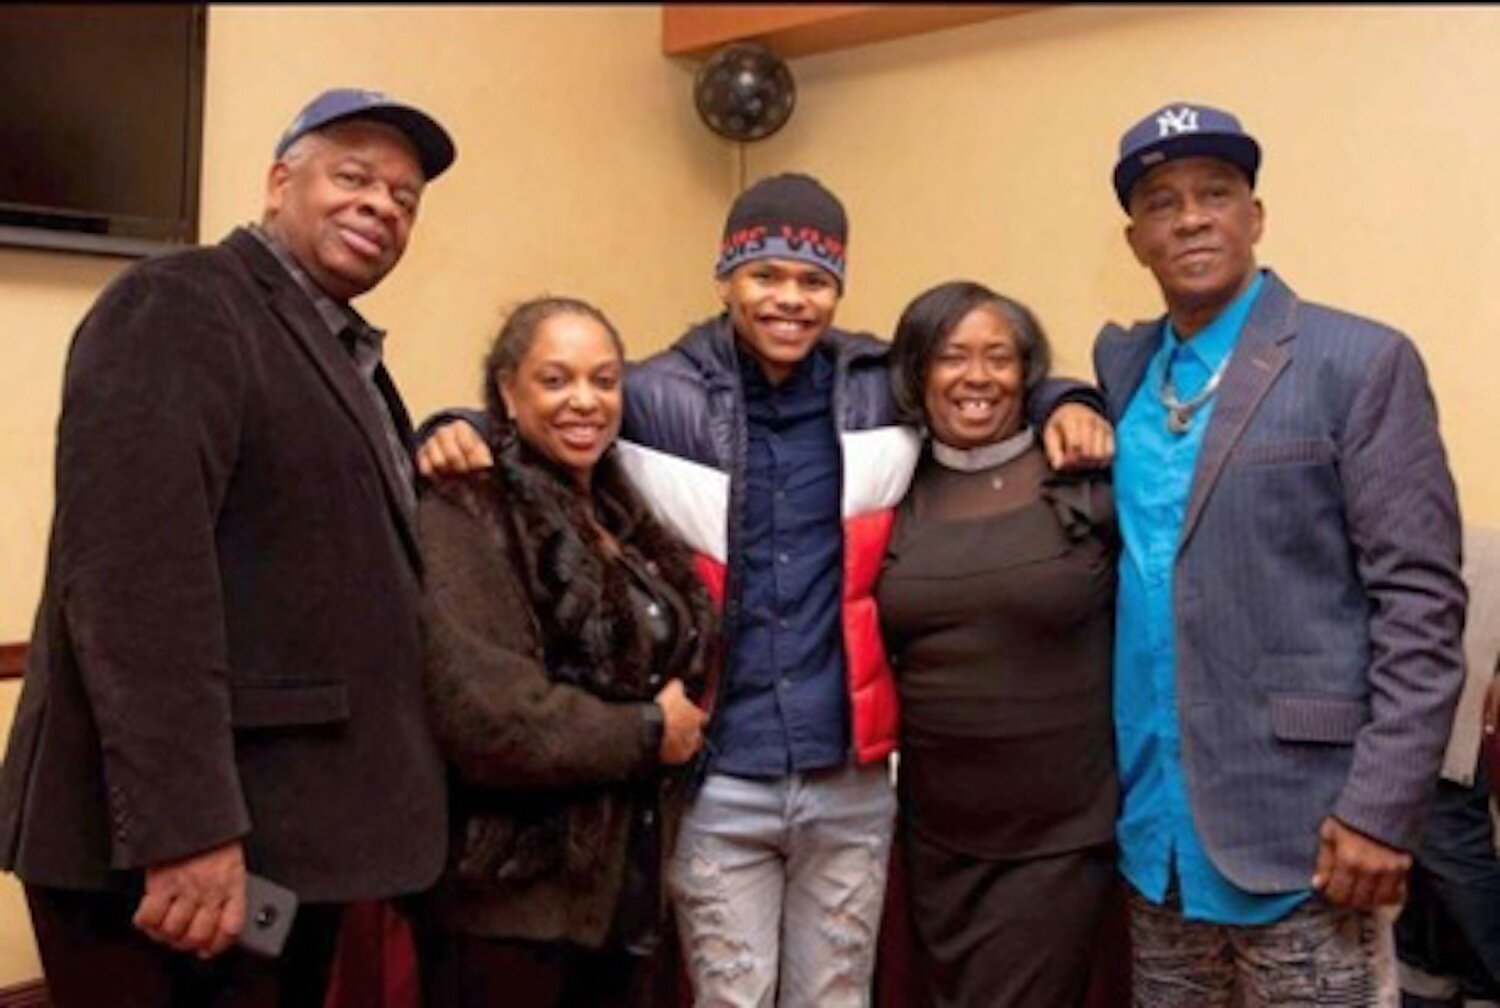 Gregory Burrus with CC Minton, Olympian/Professional Boxer Shakur Stevenson, Stevenson Moses CEO Robyn Moses, and Former Olympic Coach/NJ Hall of Fame Boxing Coach Wali Moses. Photo by    Maria B. Photography Studio   .